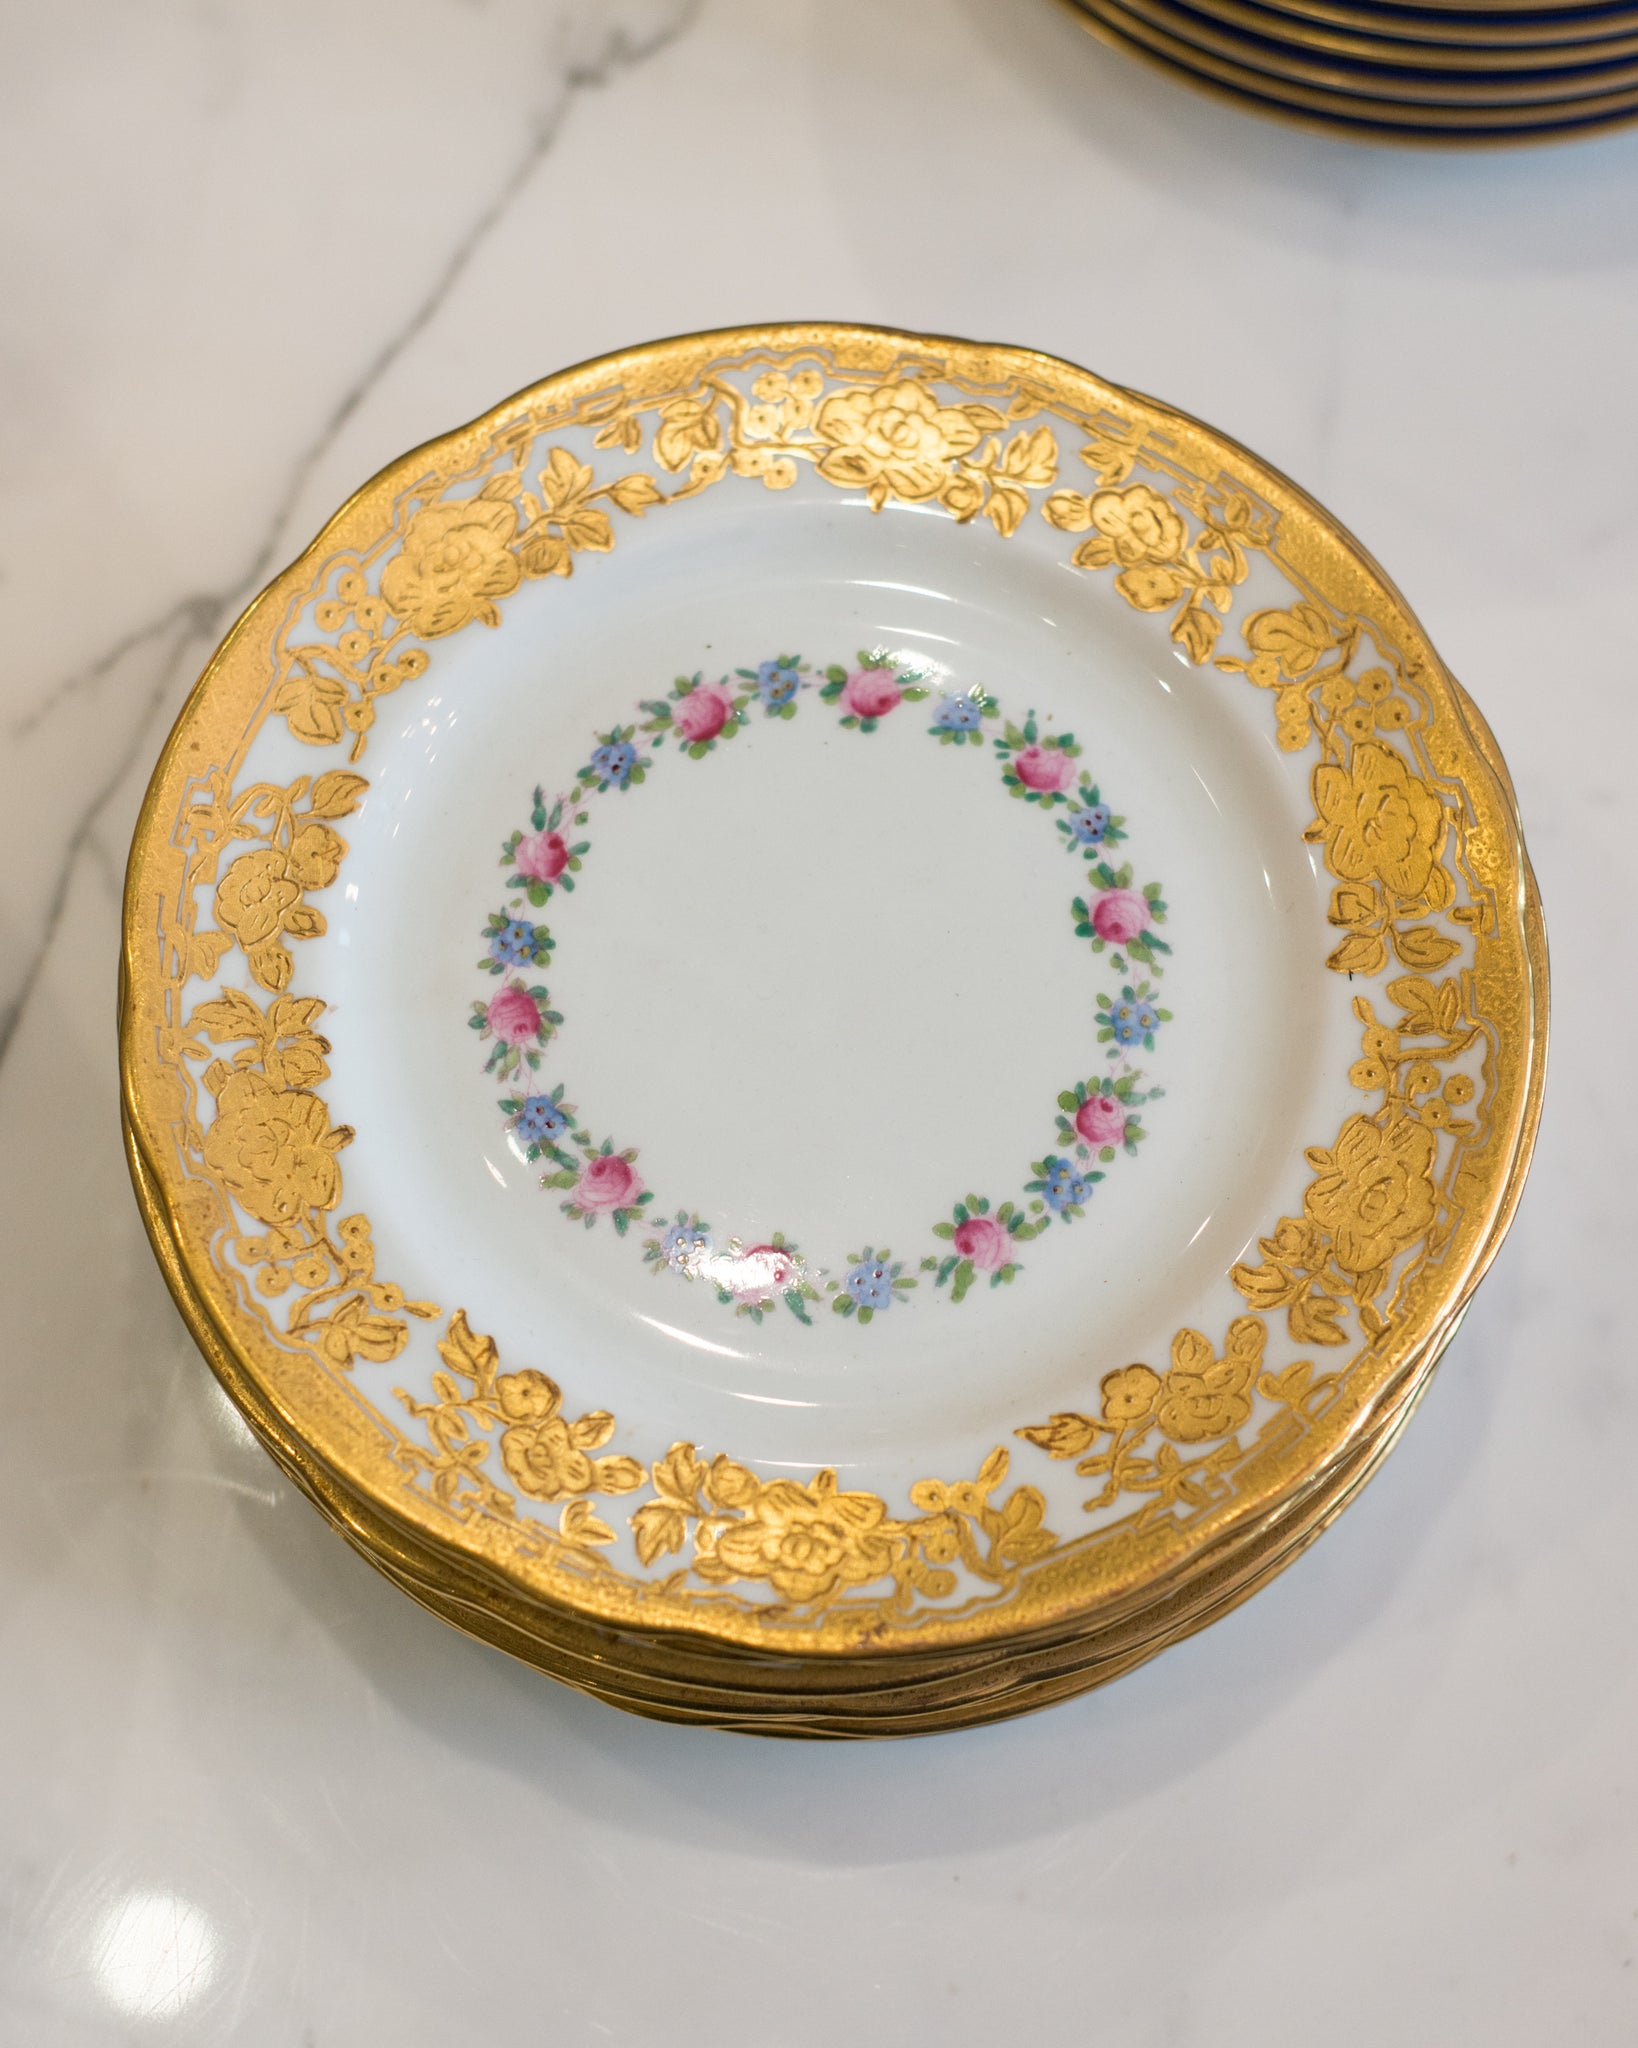 ANTIQUE SET OF 11 DESSERT PLATES EMBOSSED WITH GOLD FLOWERS